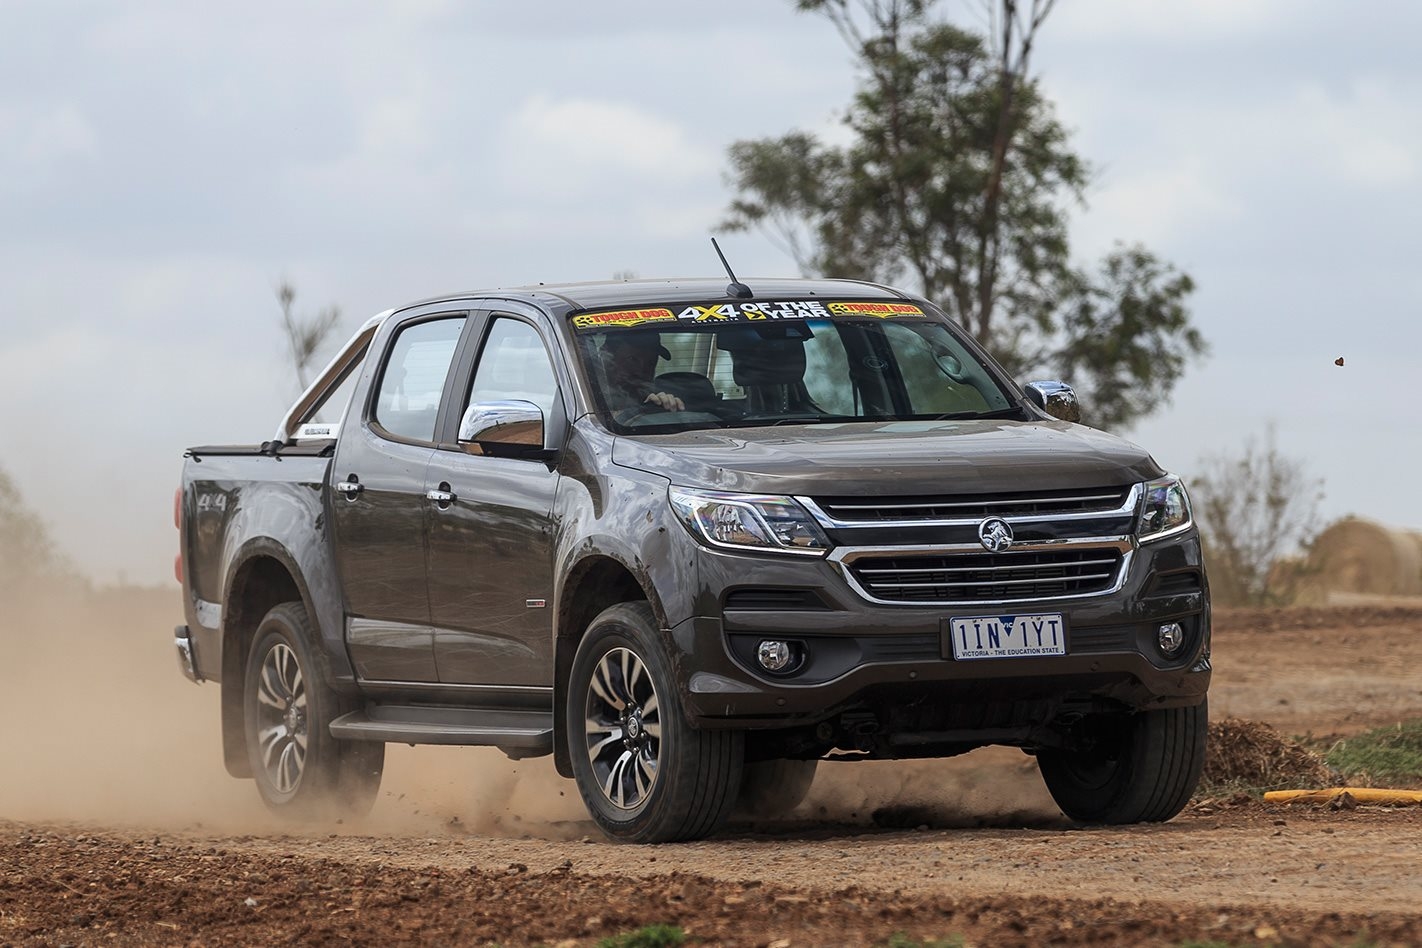 2017 4X4 Of The Year finalist: Holden Colorado | 4X4 Australia